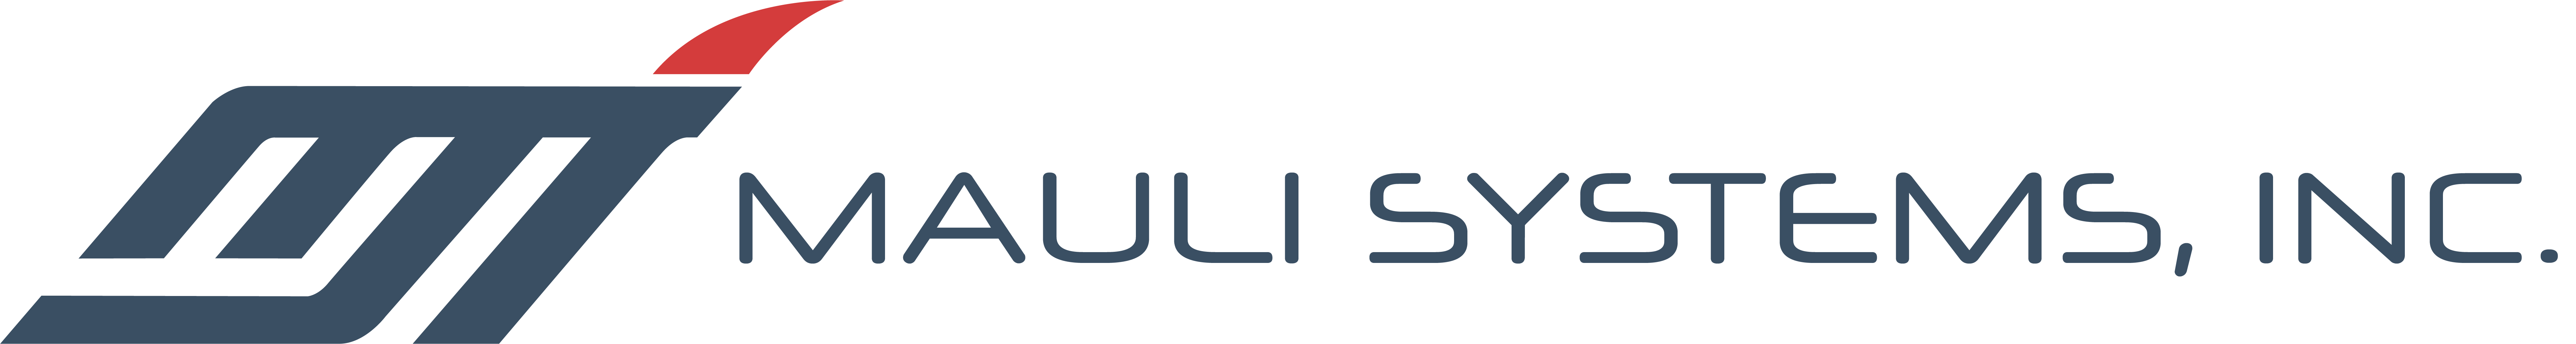 Mauli Systems, Inc  | IT Consulting | Oracle, Microsoft, Database